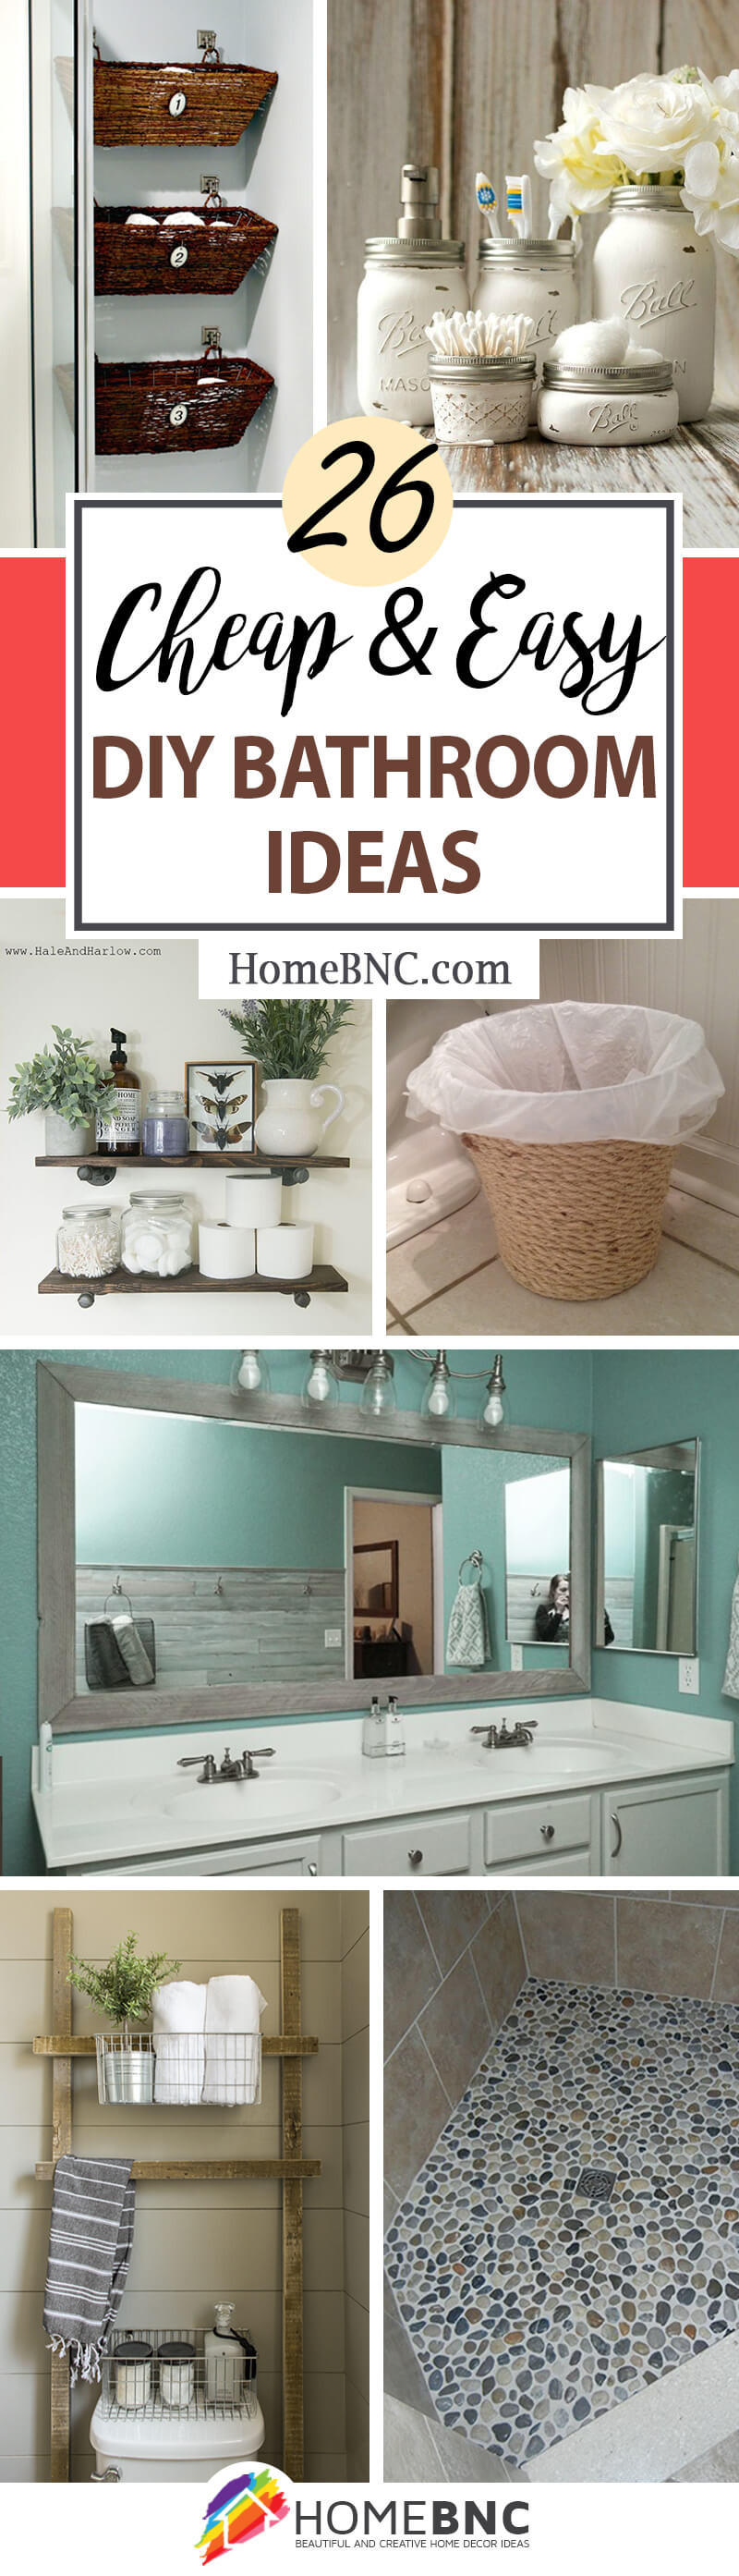 diy bathroom ideas pinterest share homebnc